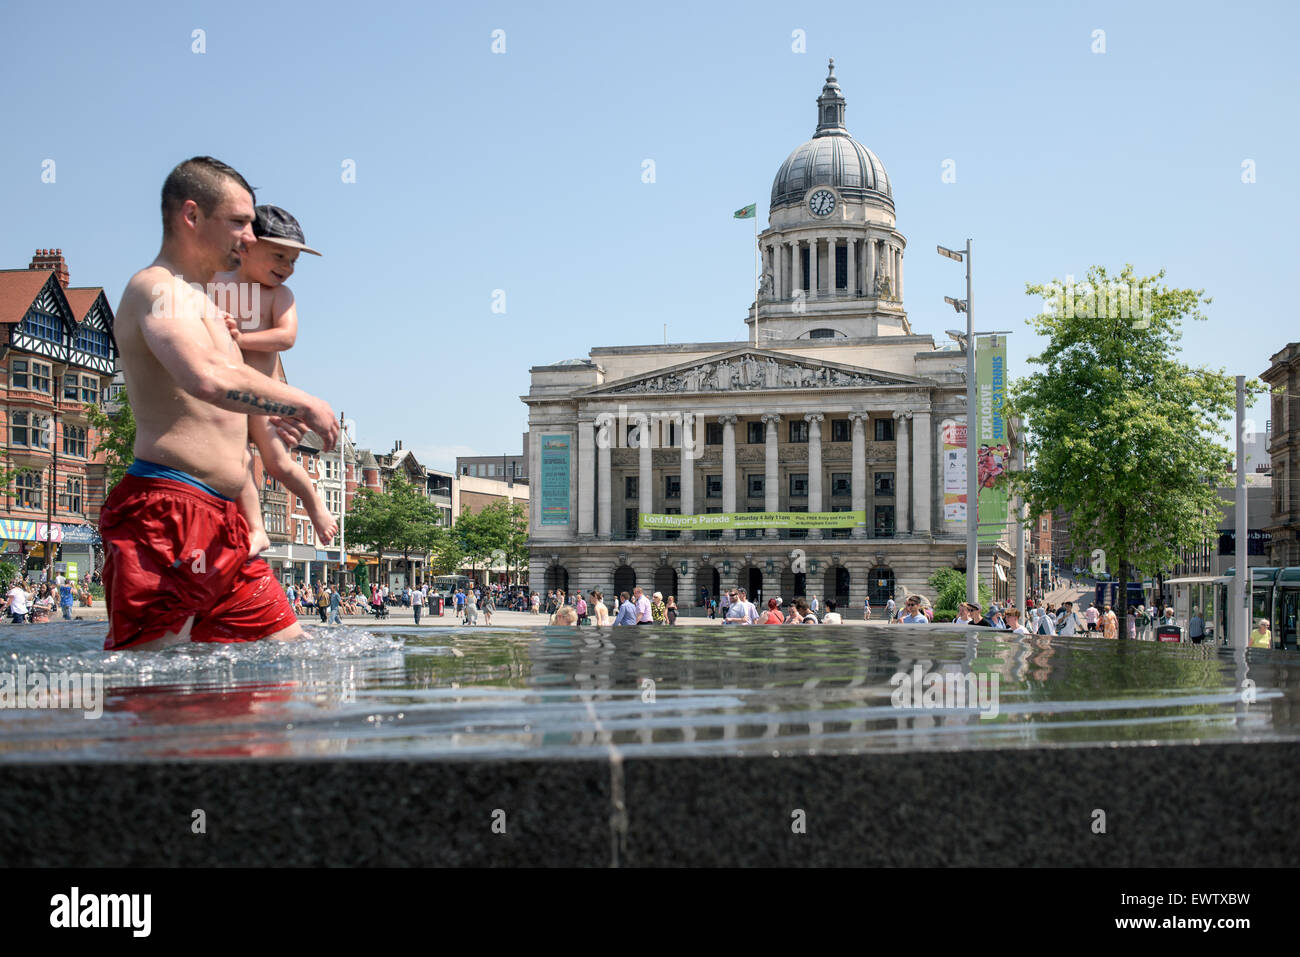 Nottingham, UK. 01st July, 2015. Heat wave hits Nottingham, People keep cool in the old market square fountains - Stock Image